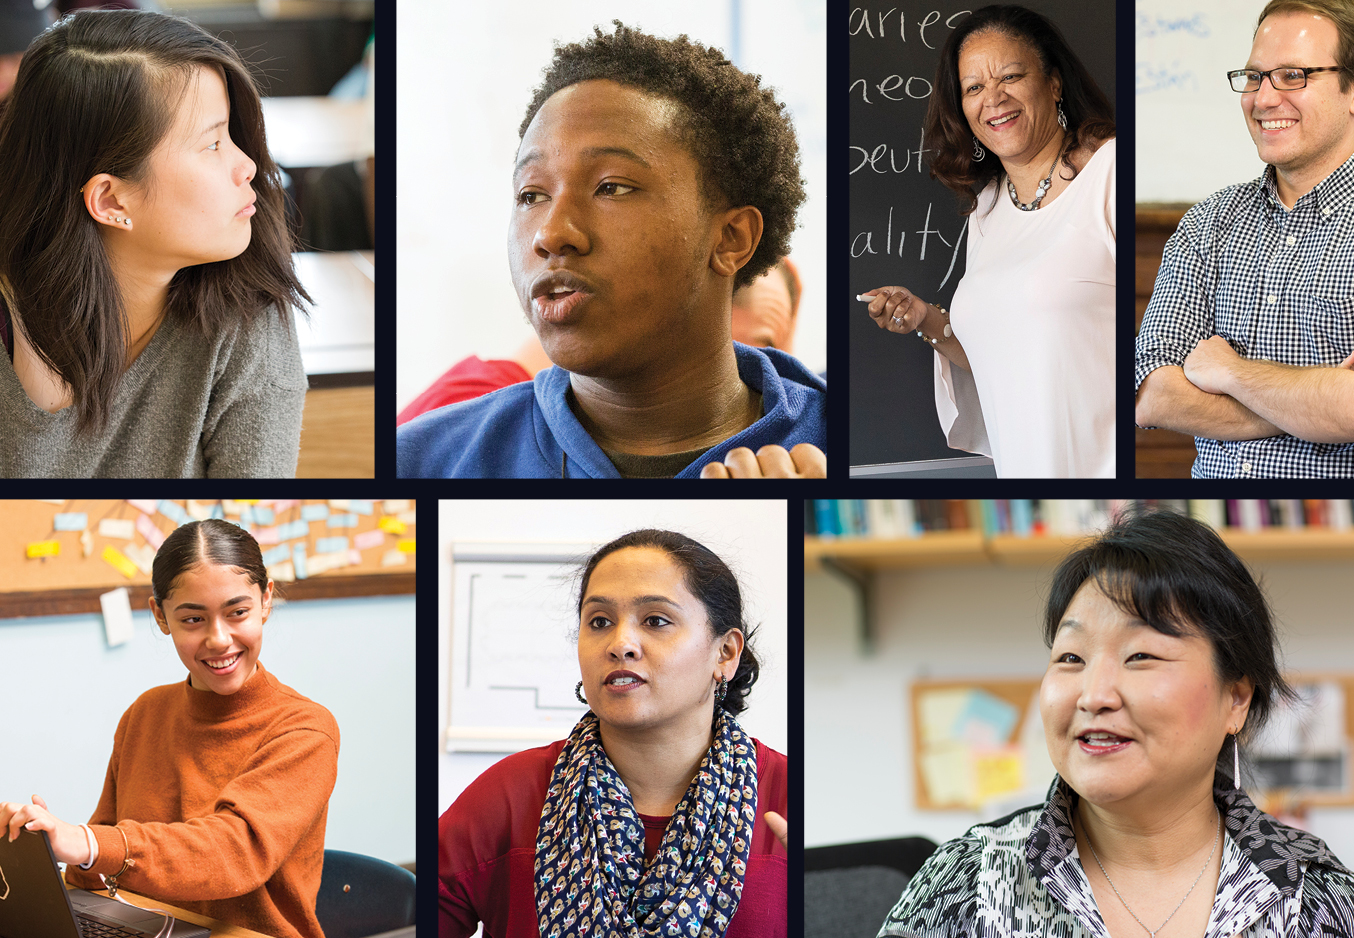 Seven tiled images of GSE faculty, Philadelphia students, and teachers in classrooms appear in rectangles.